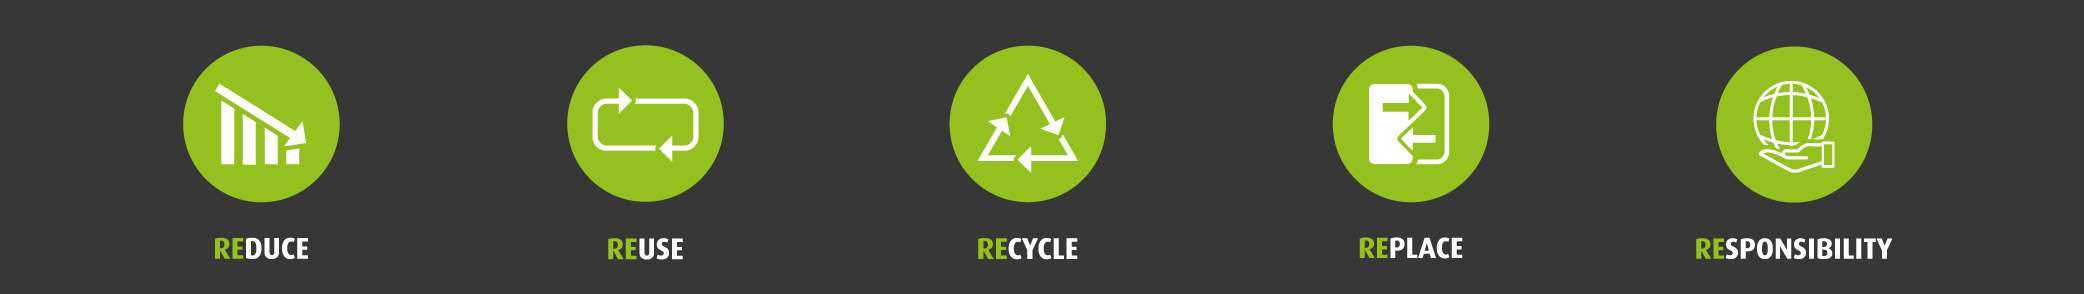 Reuse Reduce Recycle Replace Responsibility